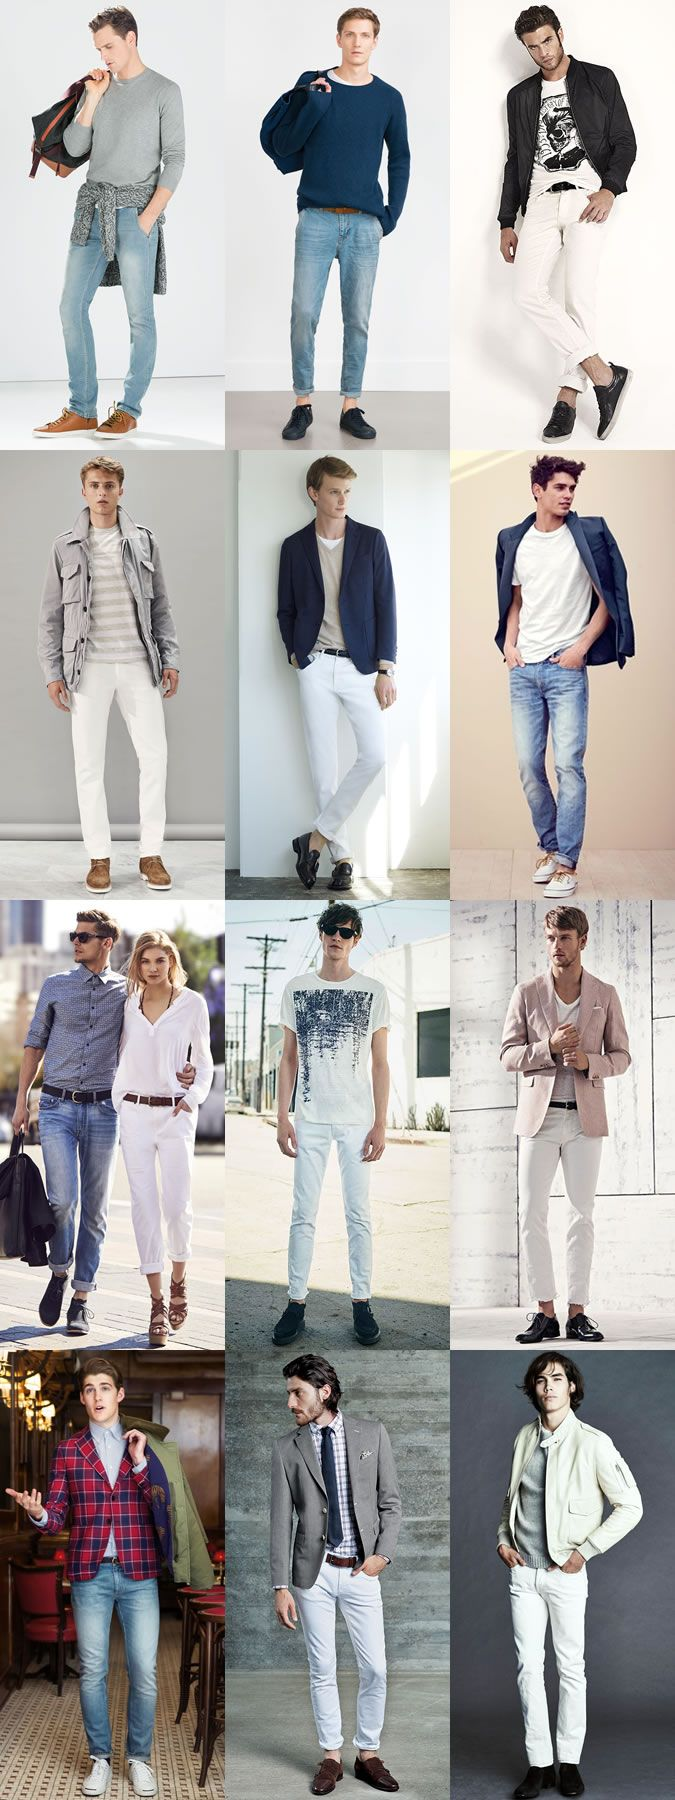 Men's Light Wash Denim Jeans Outfit Inspiration Lookbook | Fashion ...